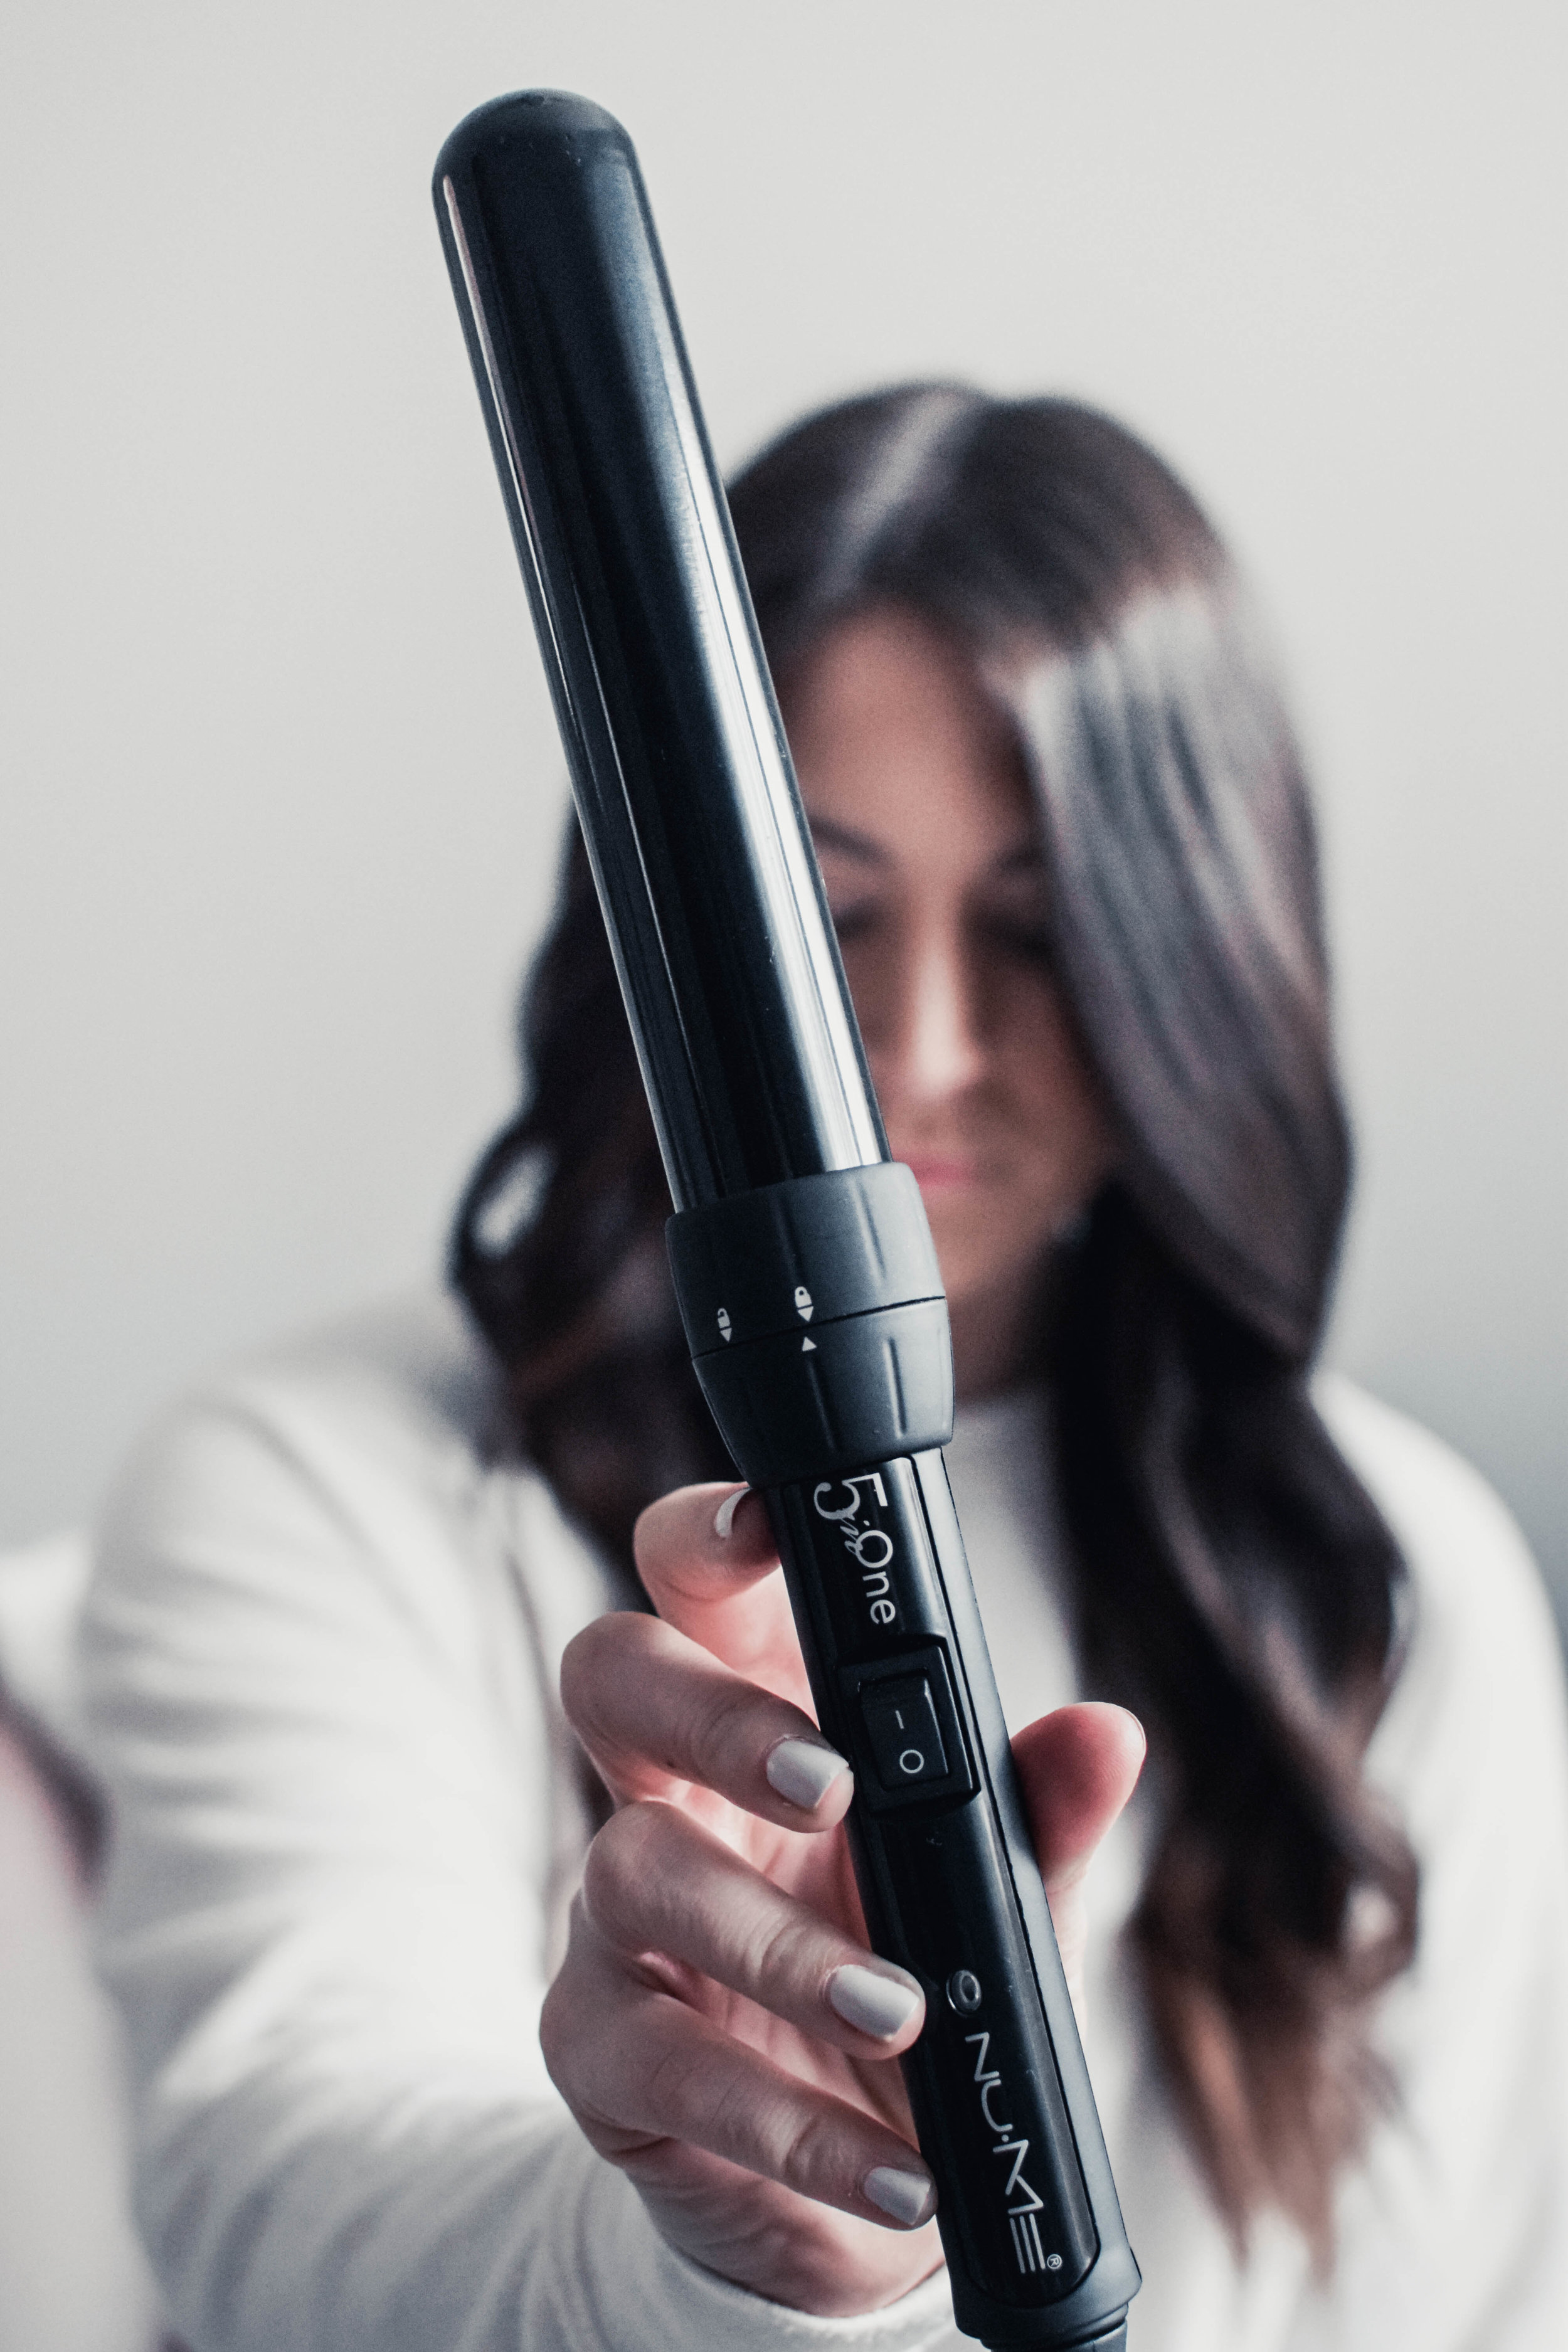 How to Curl Your Hair with a Wand | Pine Barren Beauty | nume 5 in one curling wand, 1.25 inch curling wand, how to use a curling wand